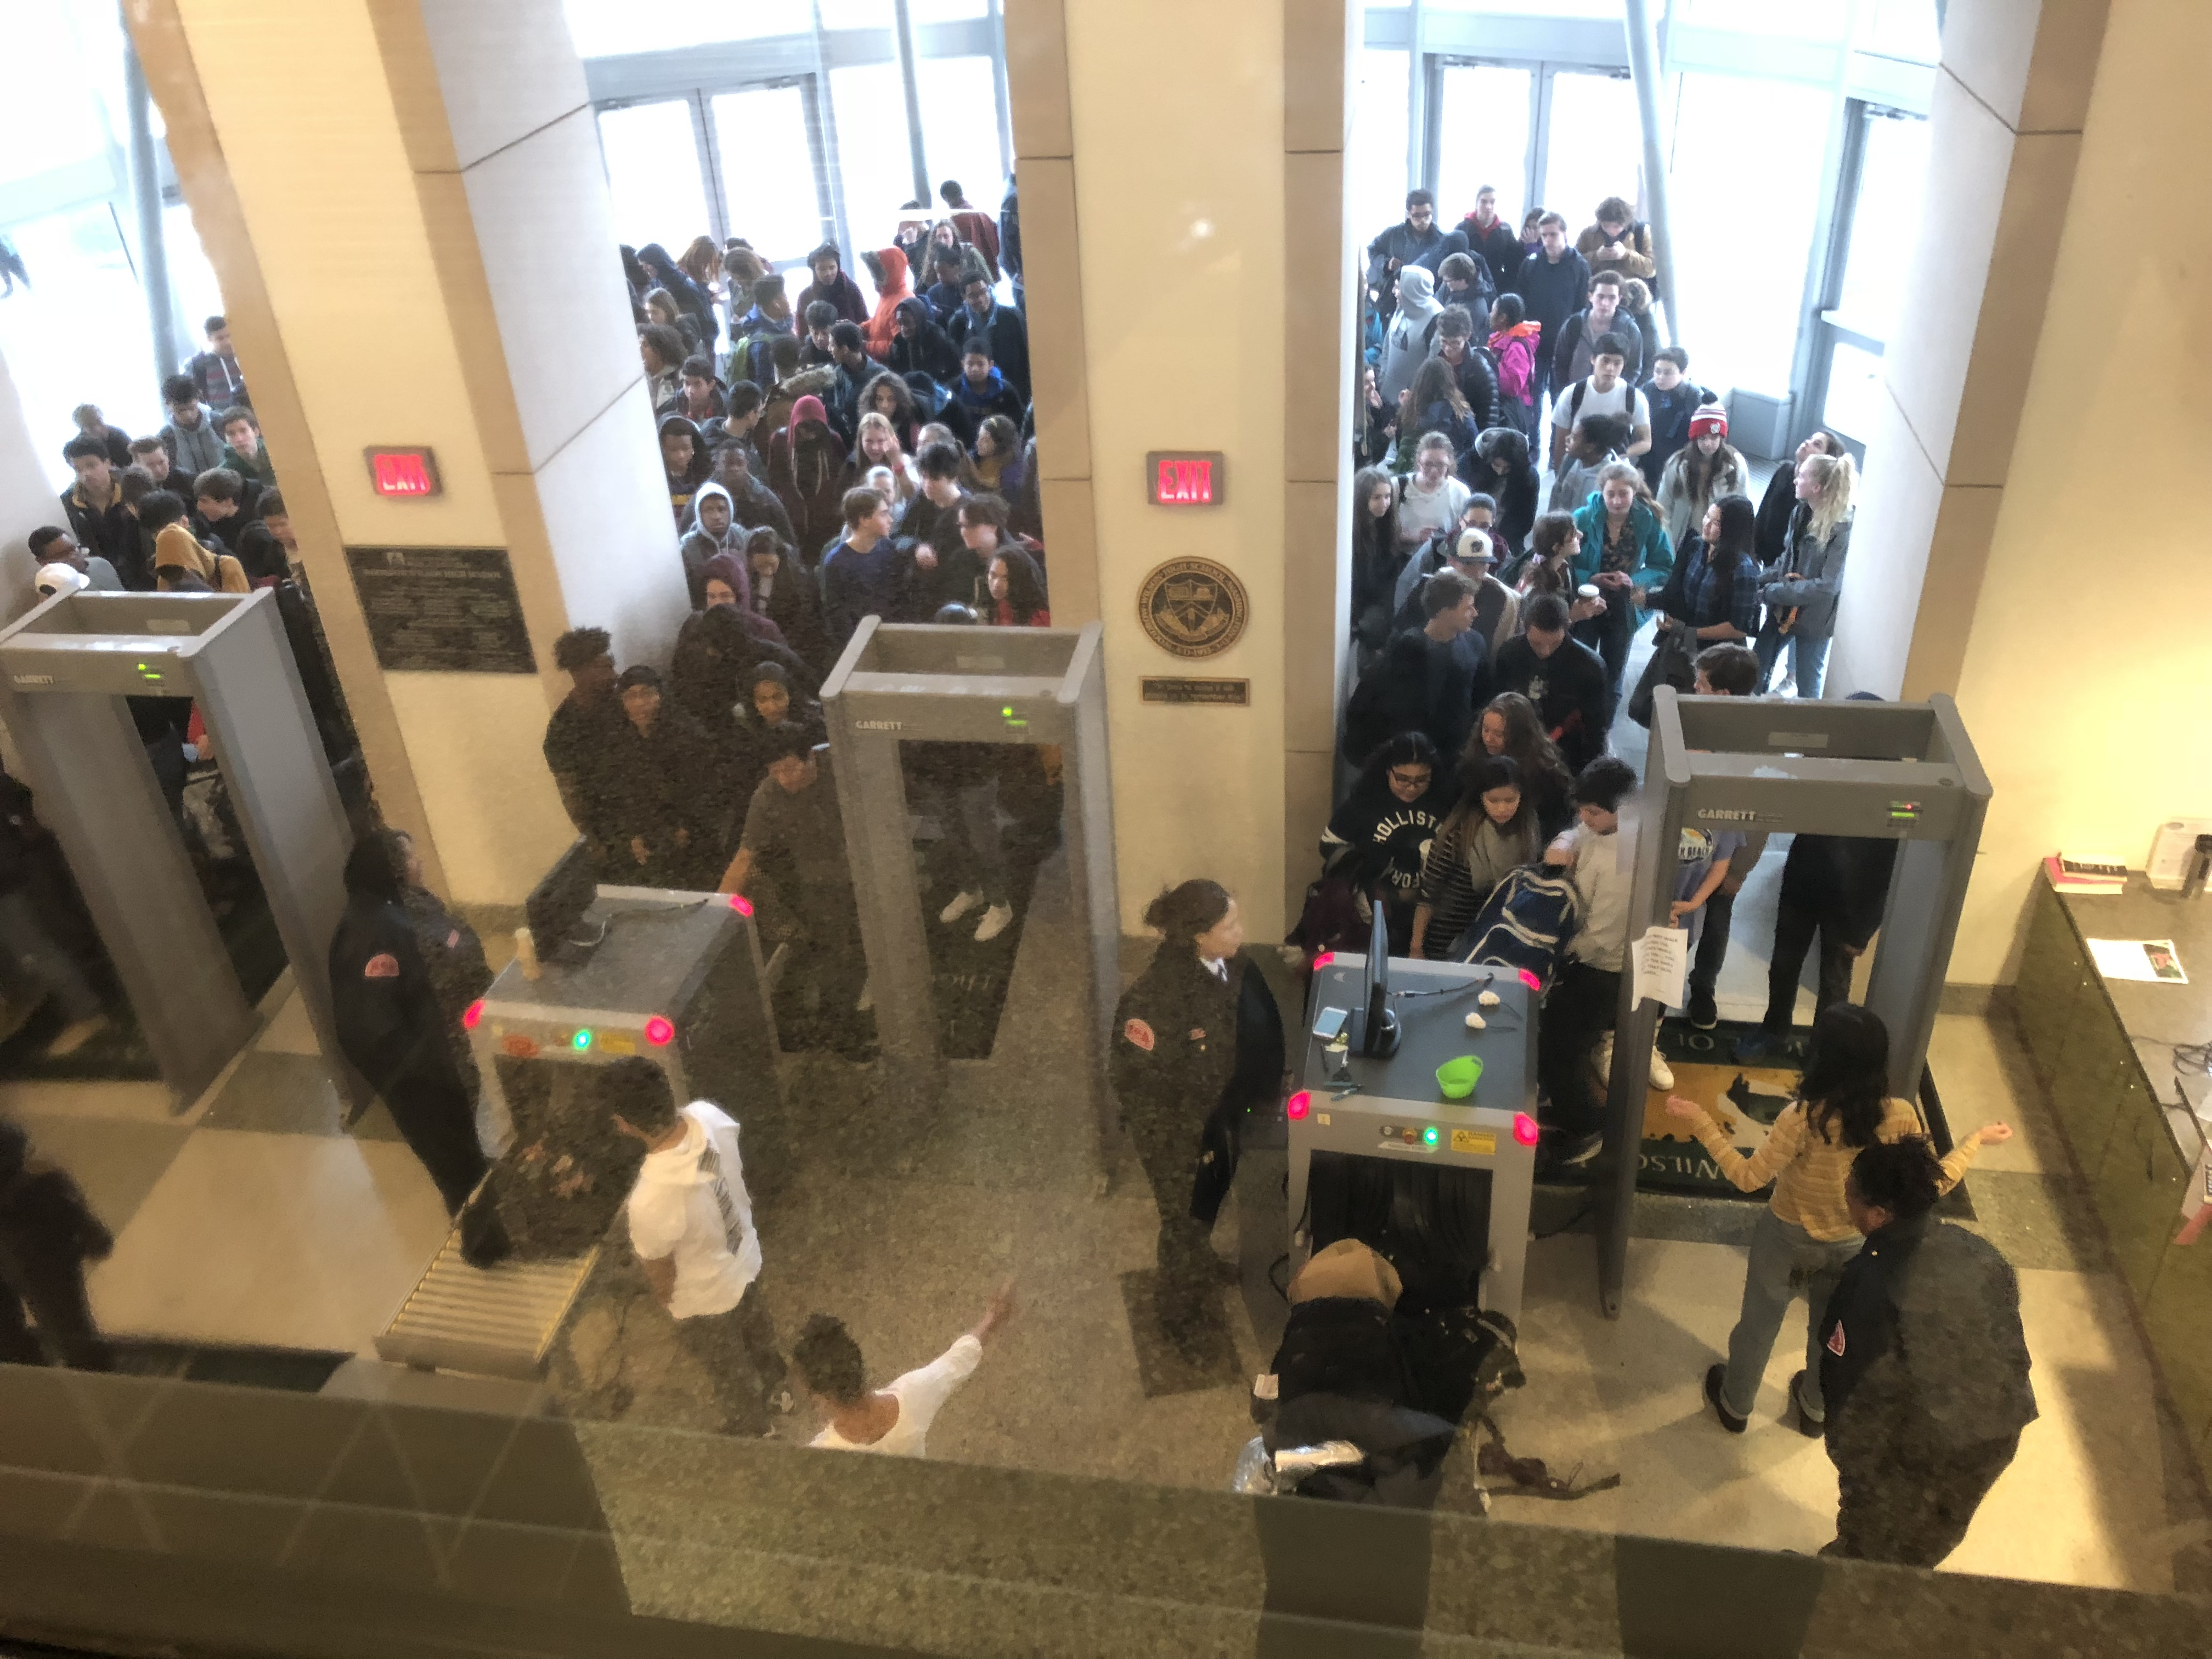 Money for metal detectors yet to be used: A search for $10,000